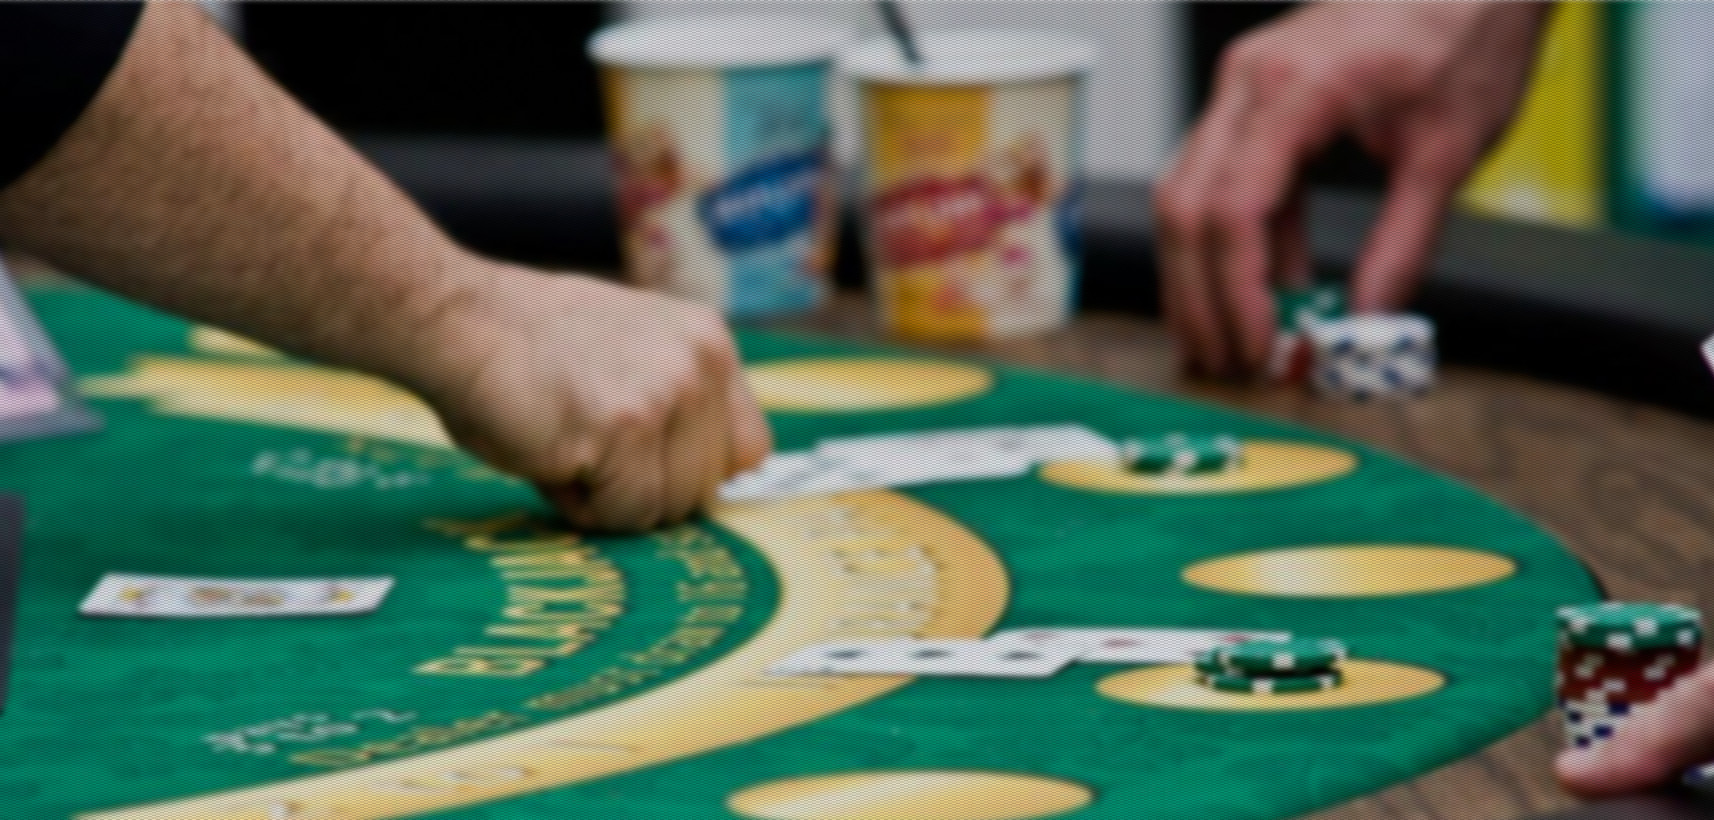 Join The Austin Young Chamber Of Commerce On Thursday June 11th For Our 7th Annual Texas Hold Em Tournament Feeling Lucky